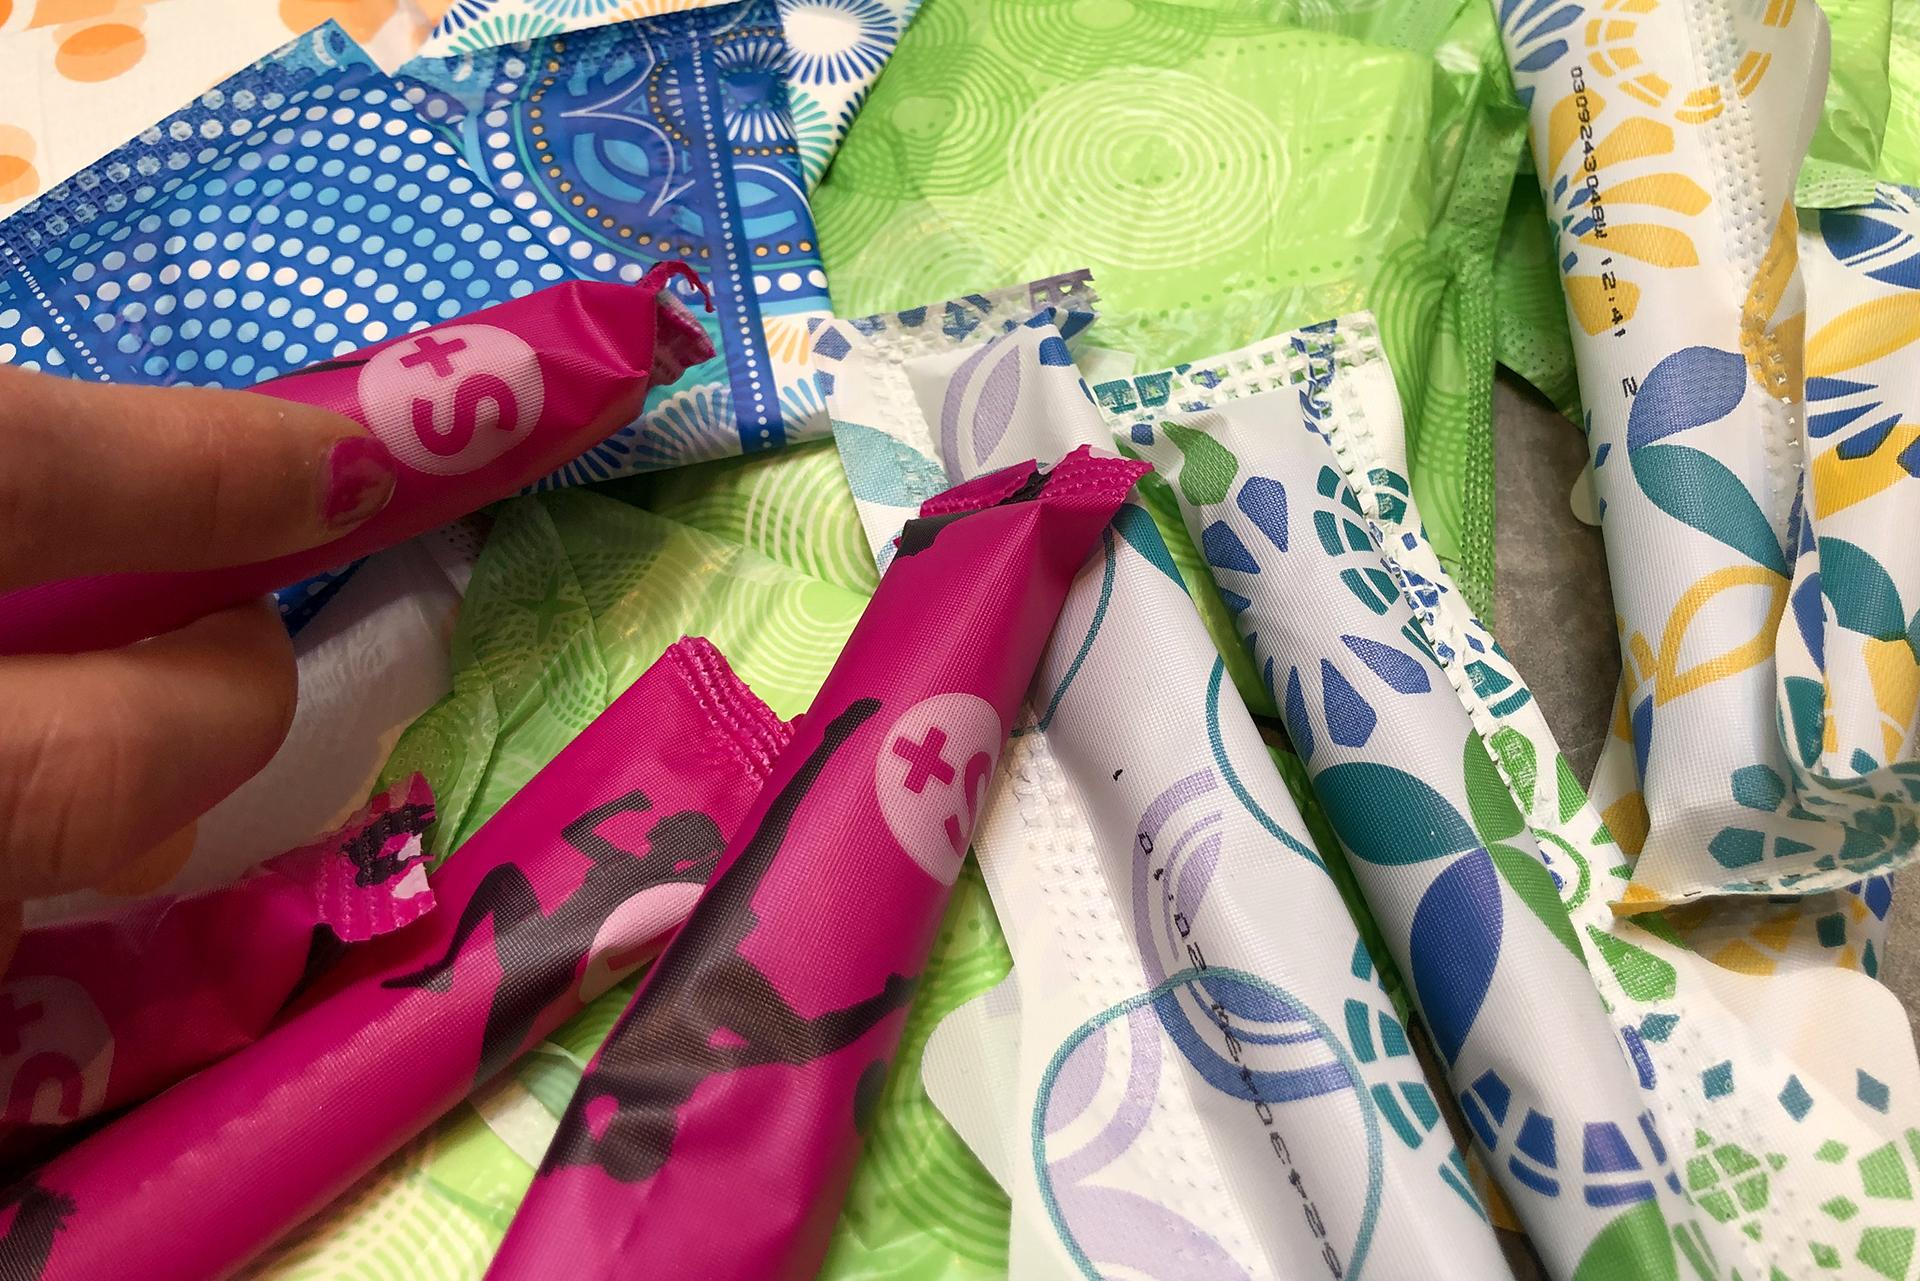 A variety of menstrual products.